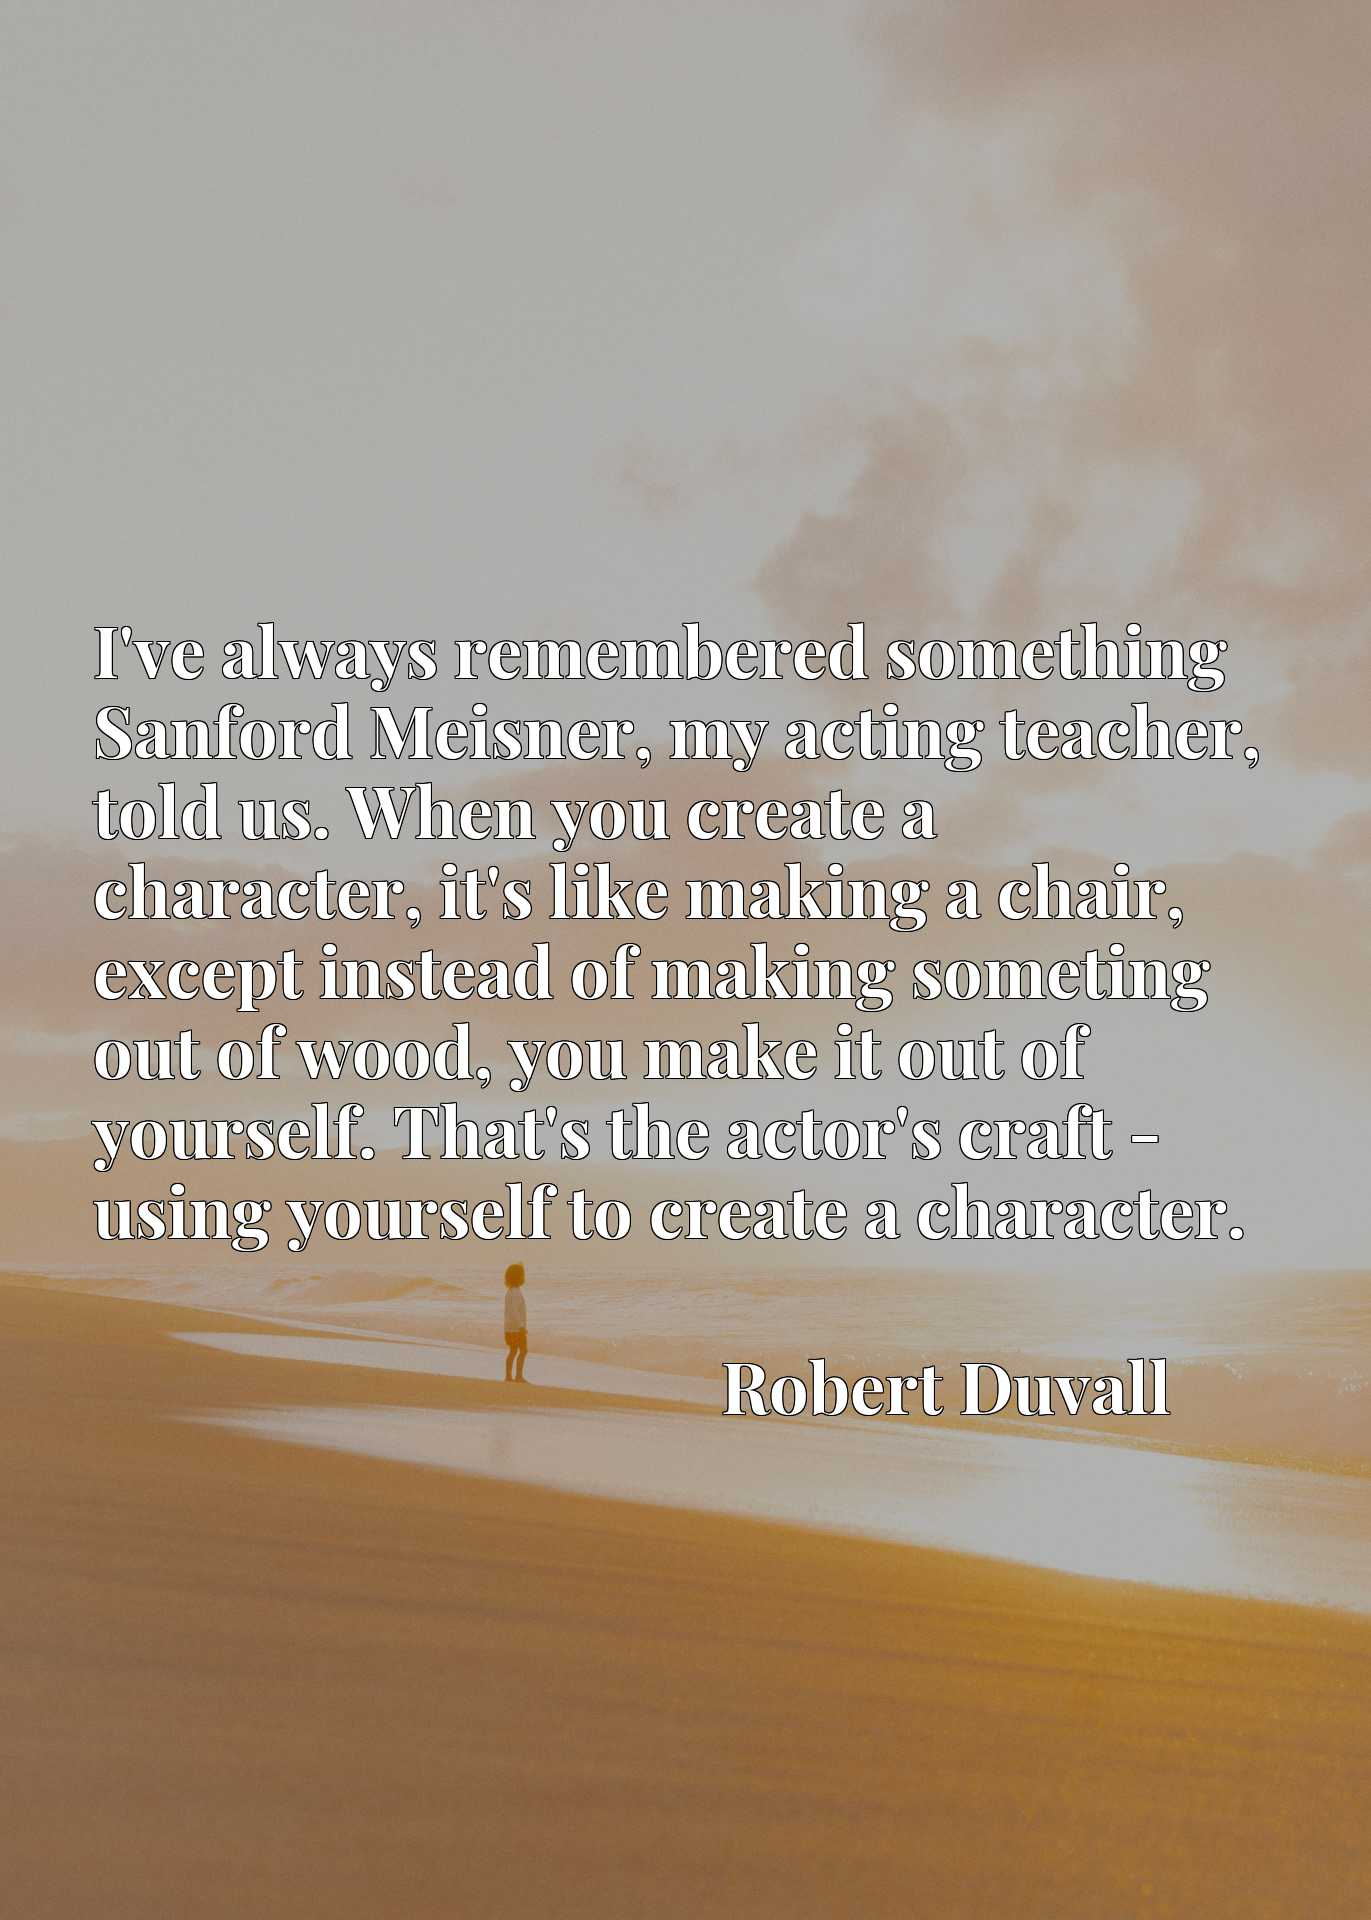 Quote Picture :I've always remembered something Sanford Meisner, my acting teacher, told us. When you create a character, it's like making a chair, except instead of making someting out of wood, you make it out of yourself. That's the actor's craft - using yourself to create a character.